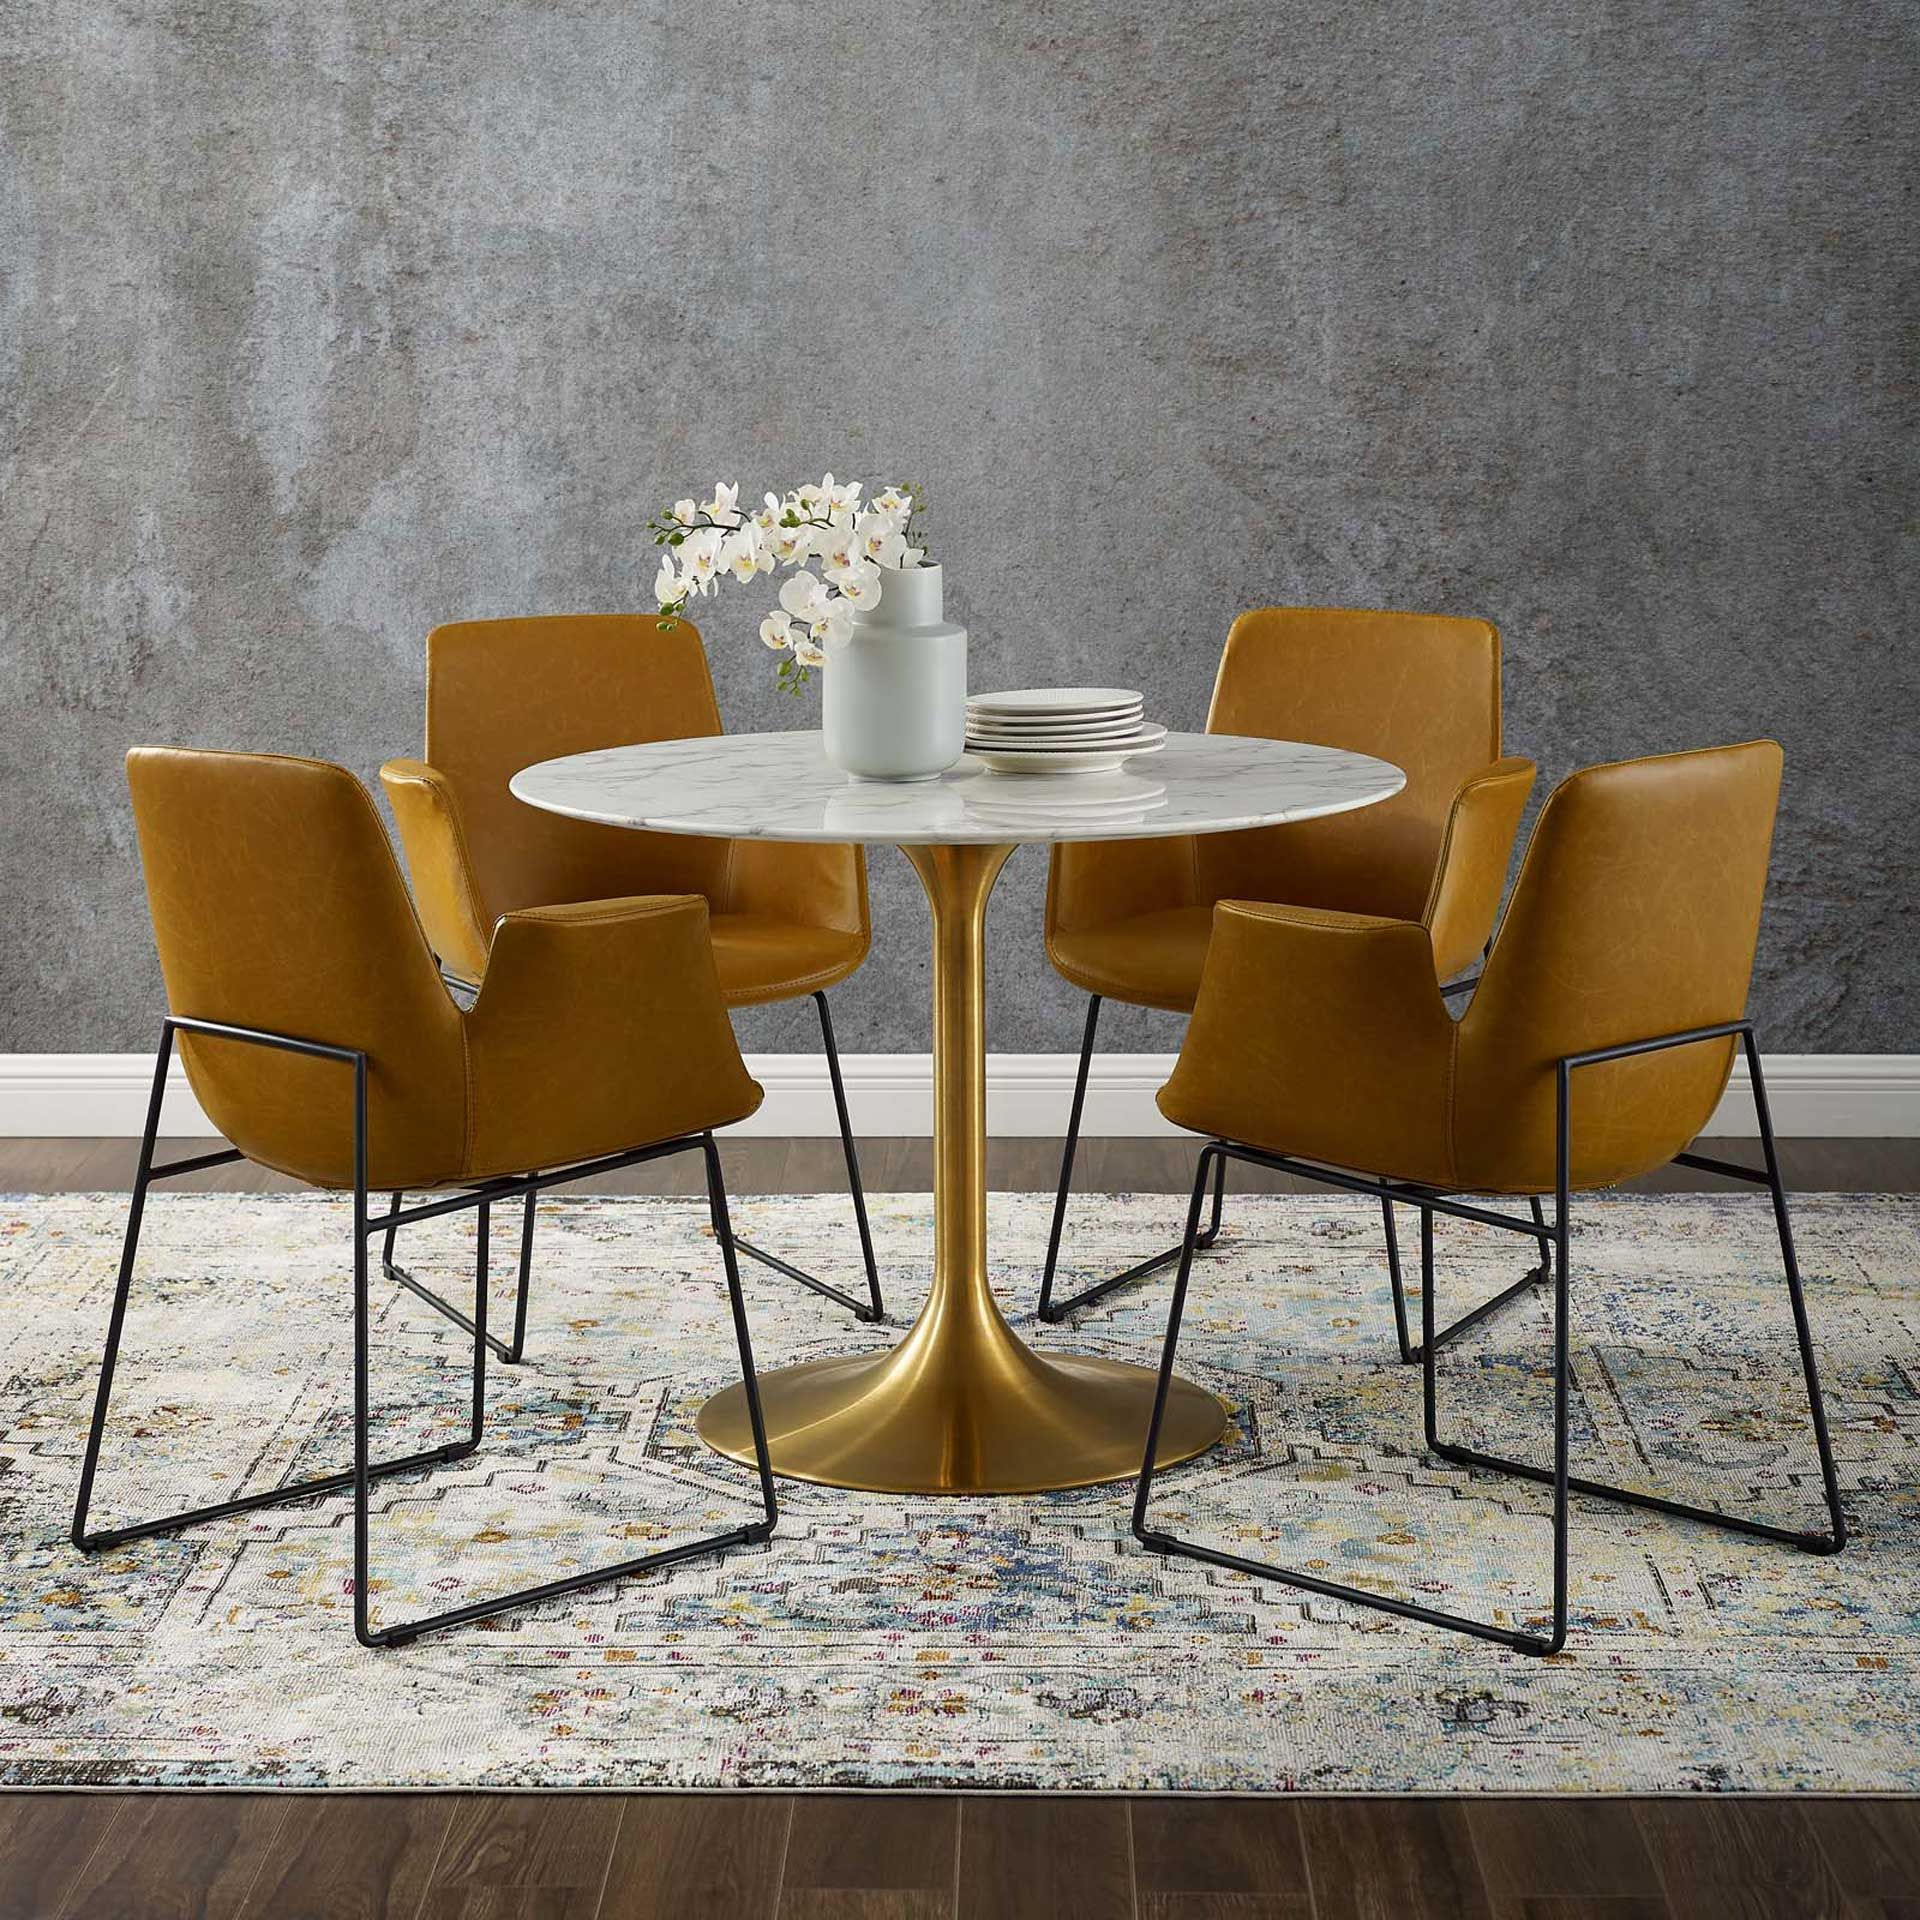 Lore Round Dining Table Gold White Marble In 2021 Dining Table Marble Dining Table Gold Marble Dining